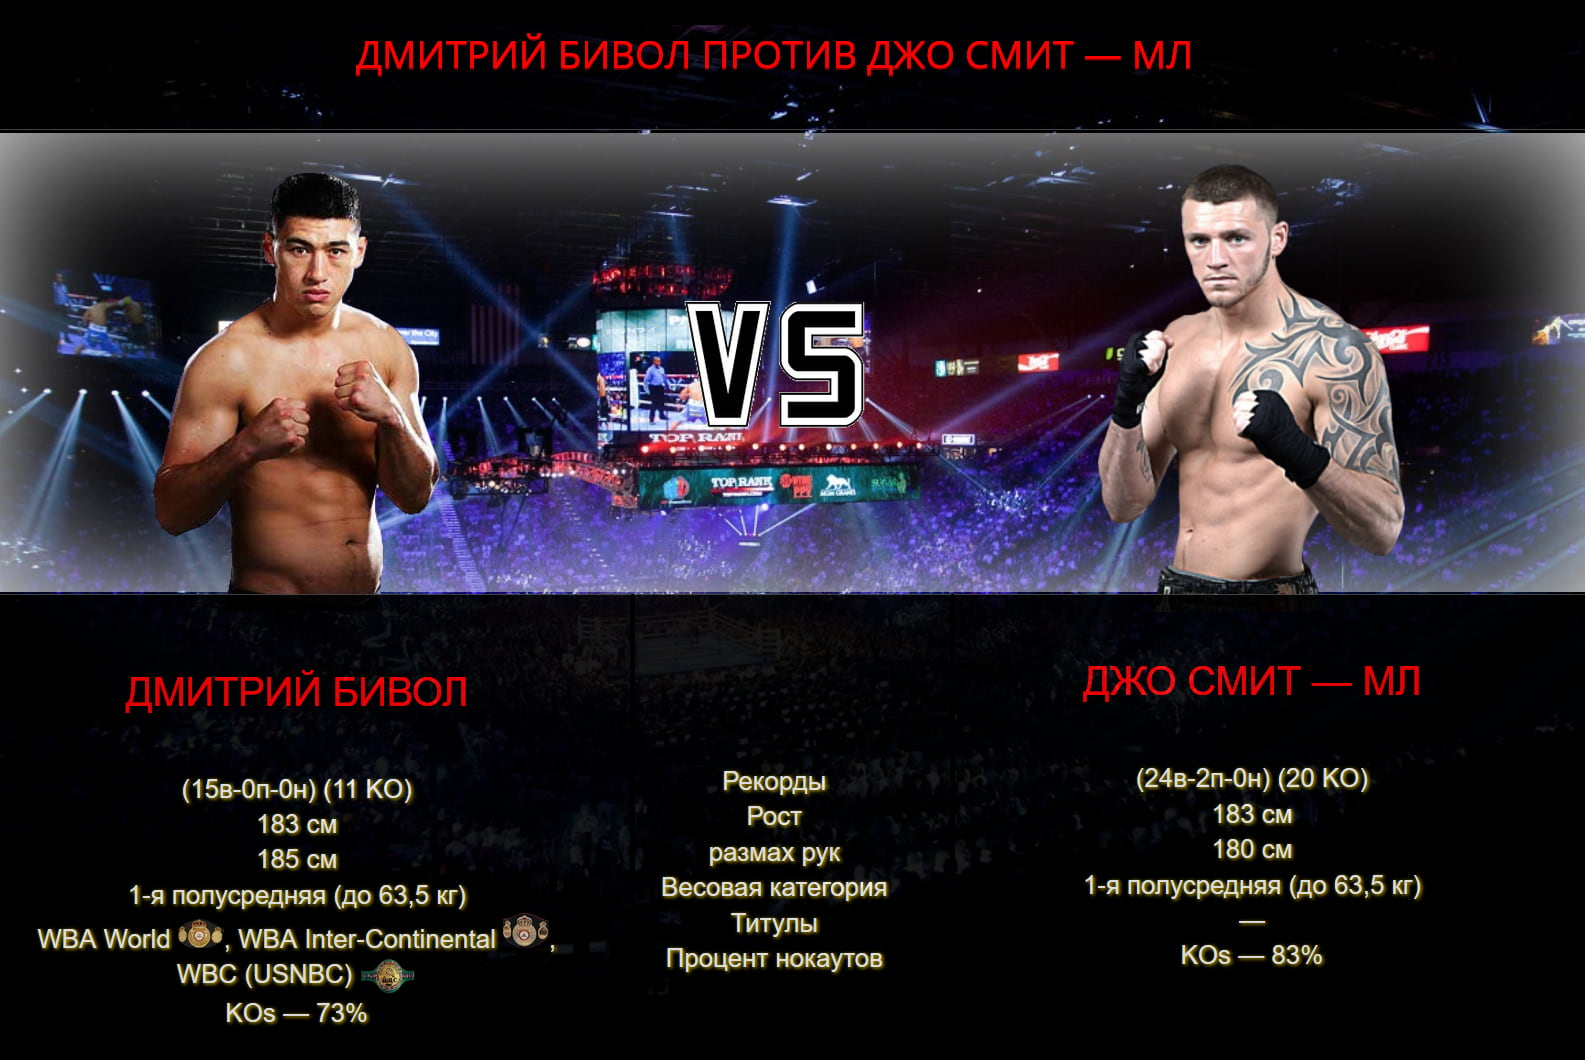 Дмитрий Бивол - Джо Смит, мл / Dmitry Bivol vs Joe Smith Jr